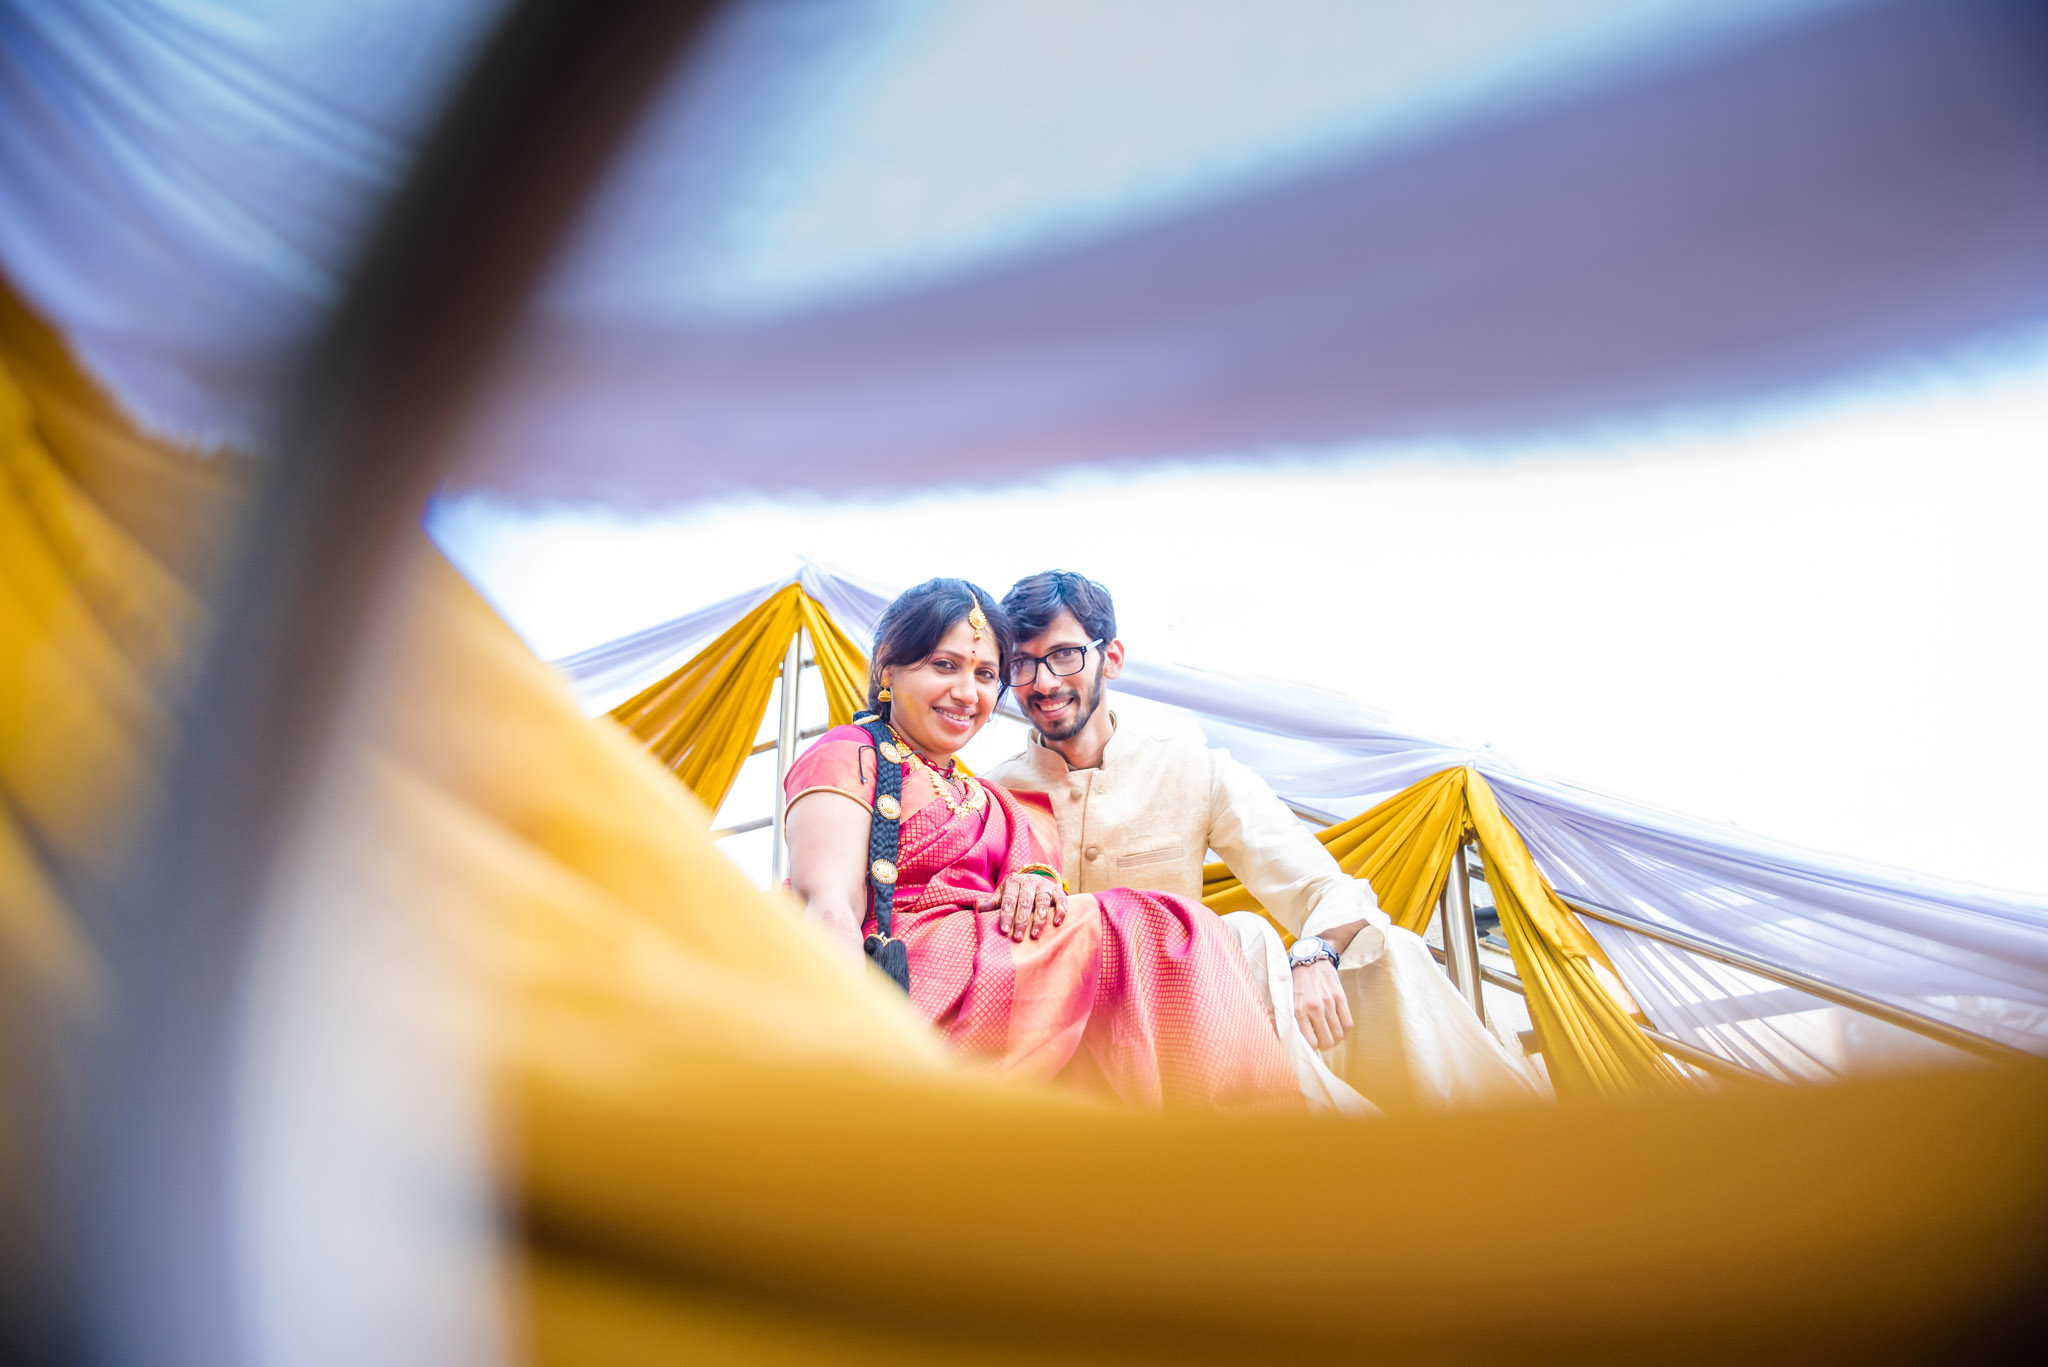 WhatKnot-Candid-Wedding-Photography-Mumbai-Bangalore-223